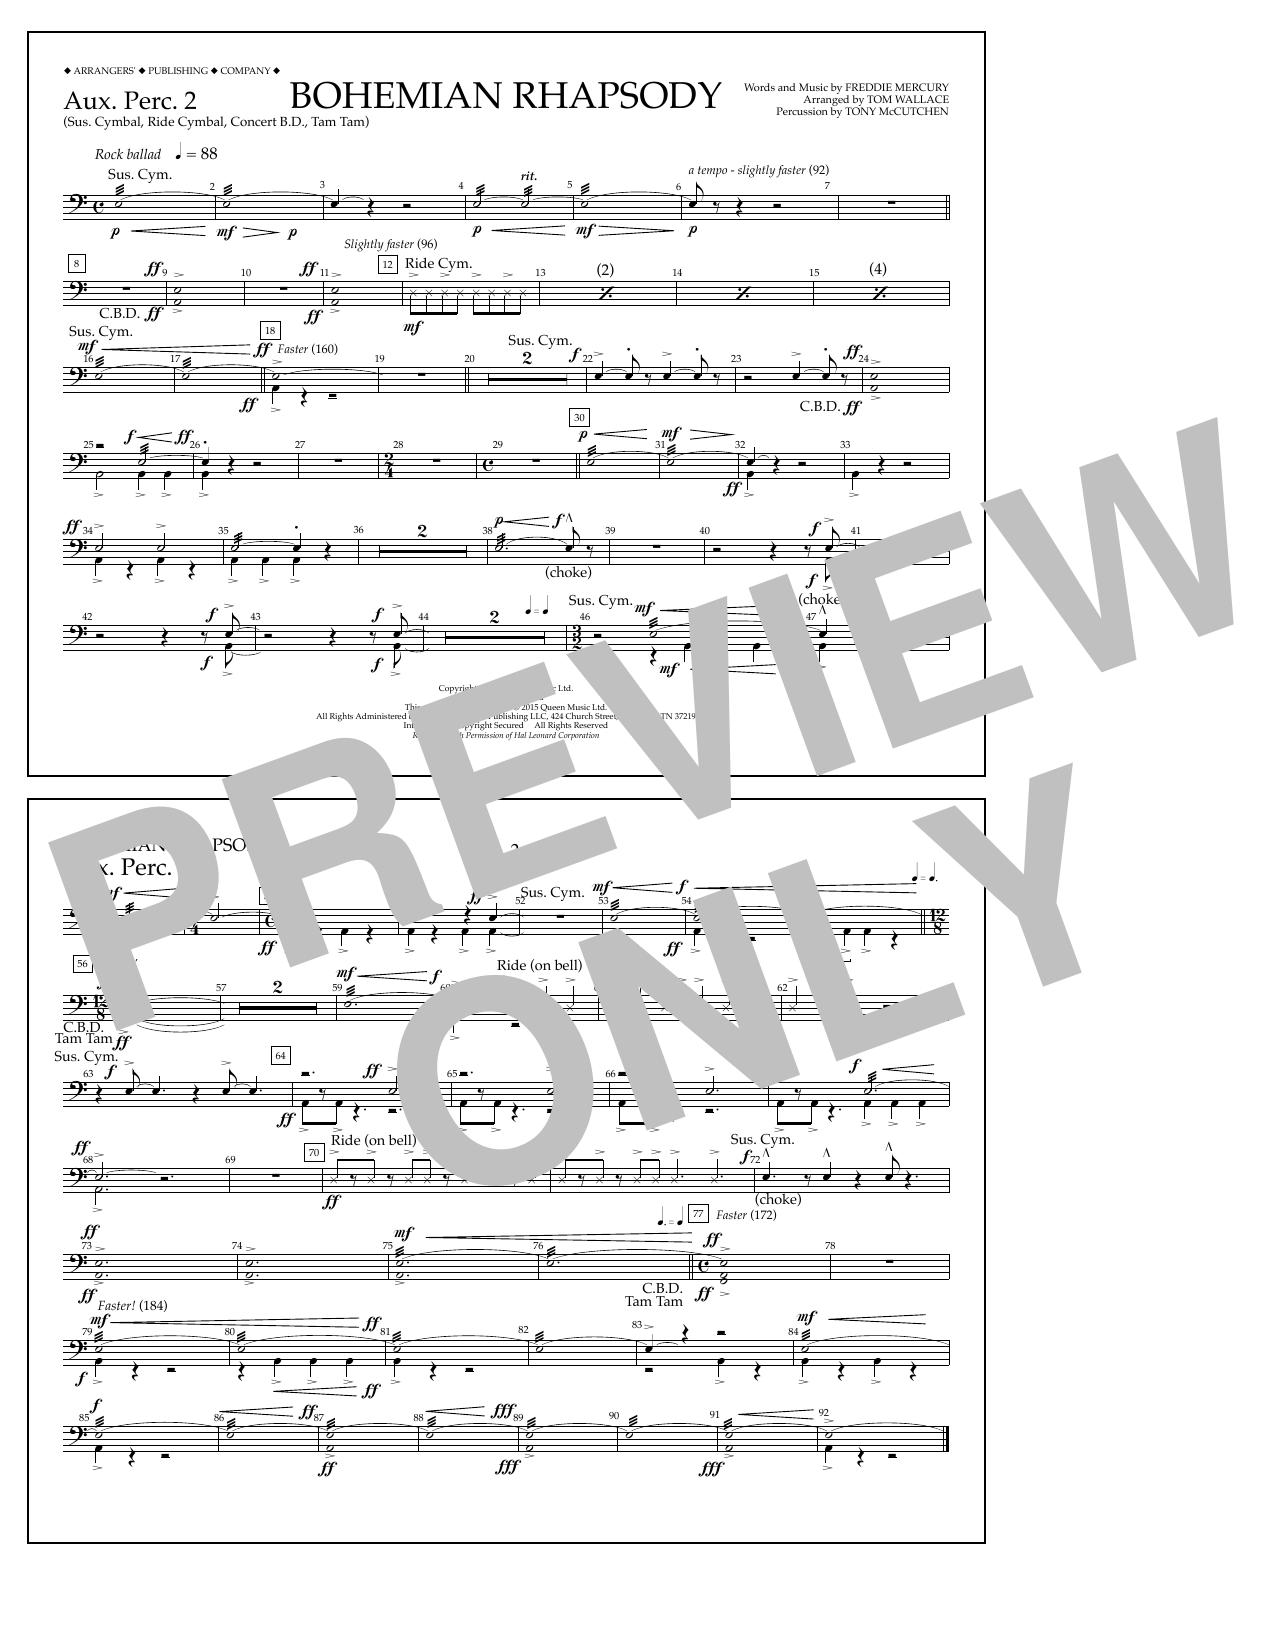 Tom Wallace Bohemian Rhapsody - Aux. Perc. 2 sheet music notes and chords. Download Printable PDF.